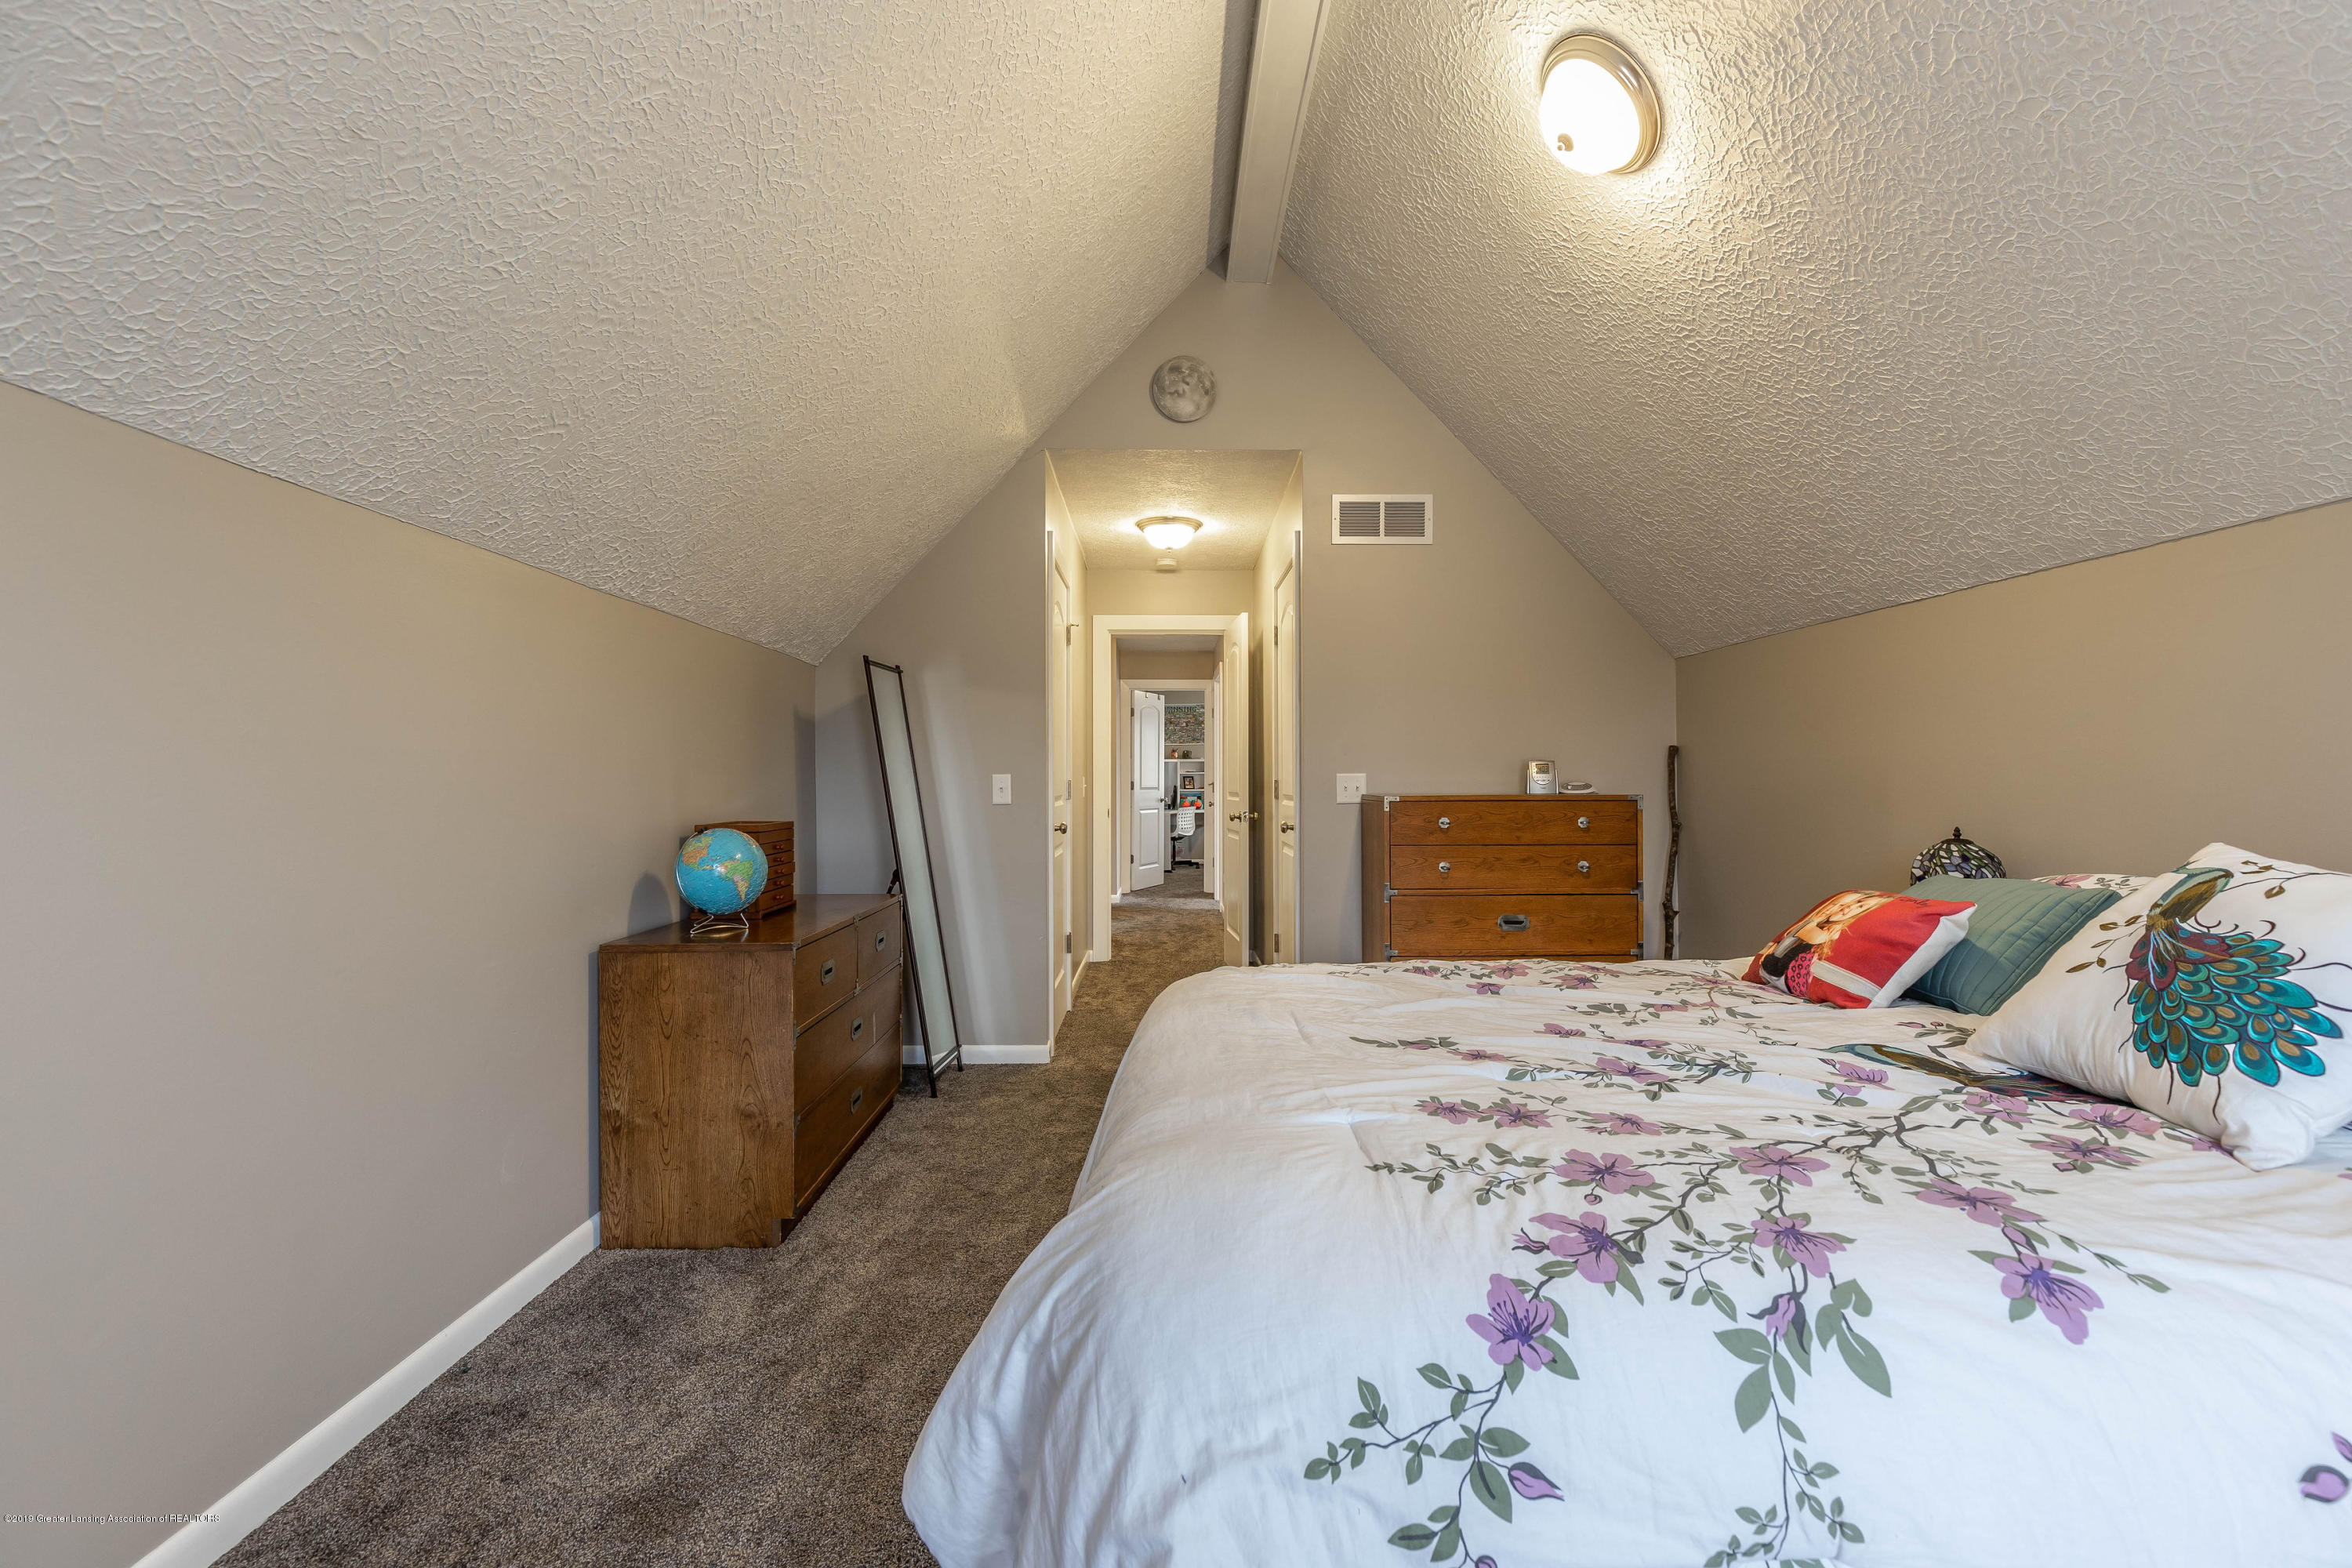 1701 Wyngarden Ln - Bedroom 1 - 46